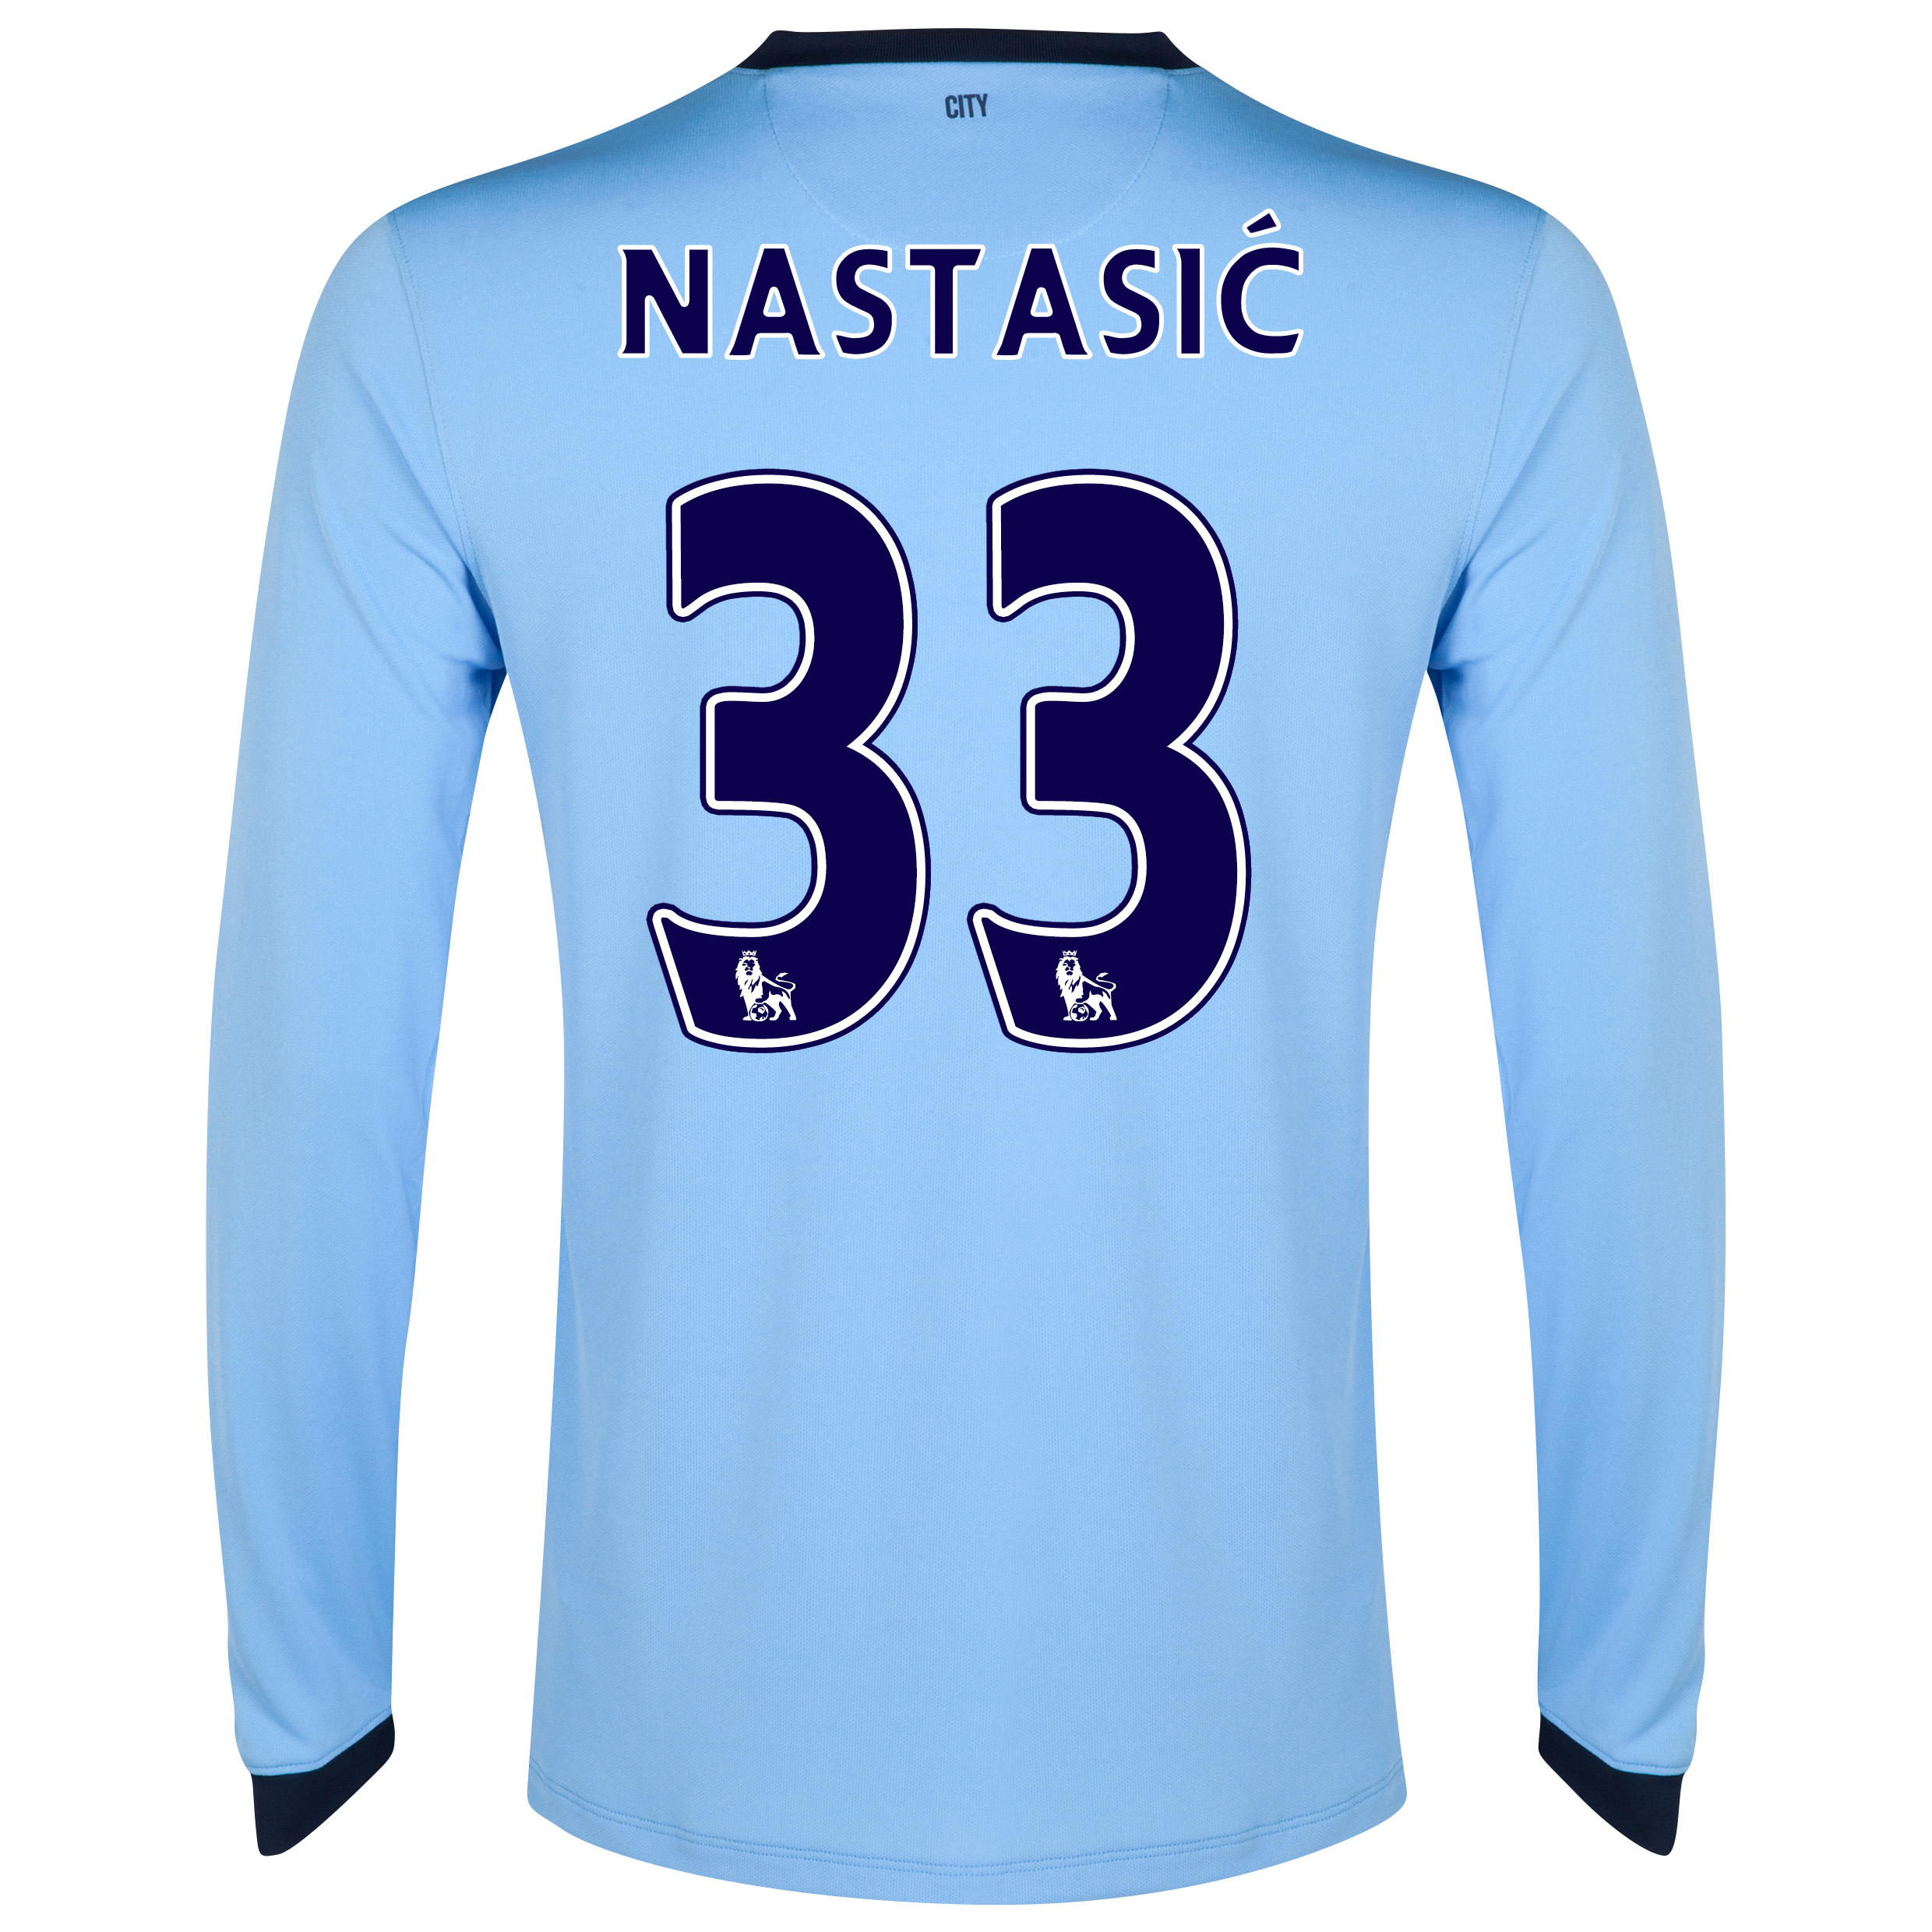 Manchester City Home Shirt 2014/15 - Long Sleeve Sky Blue with Nastasic 33 printing